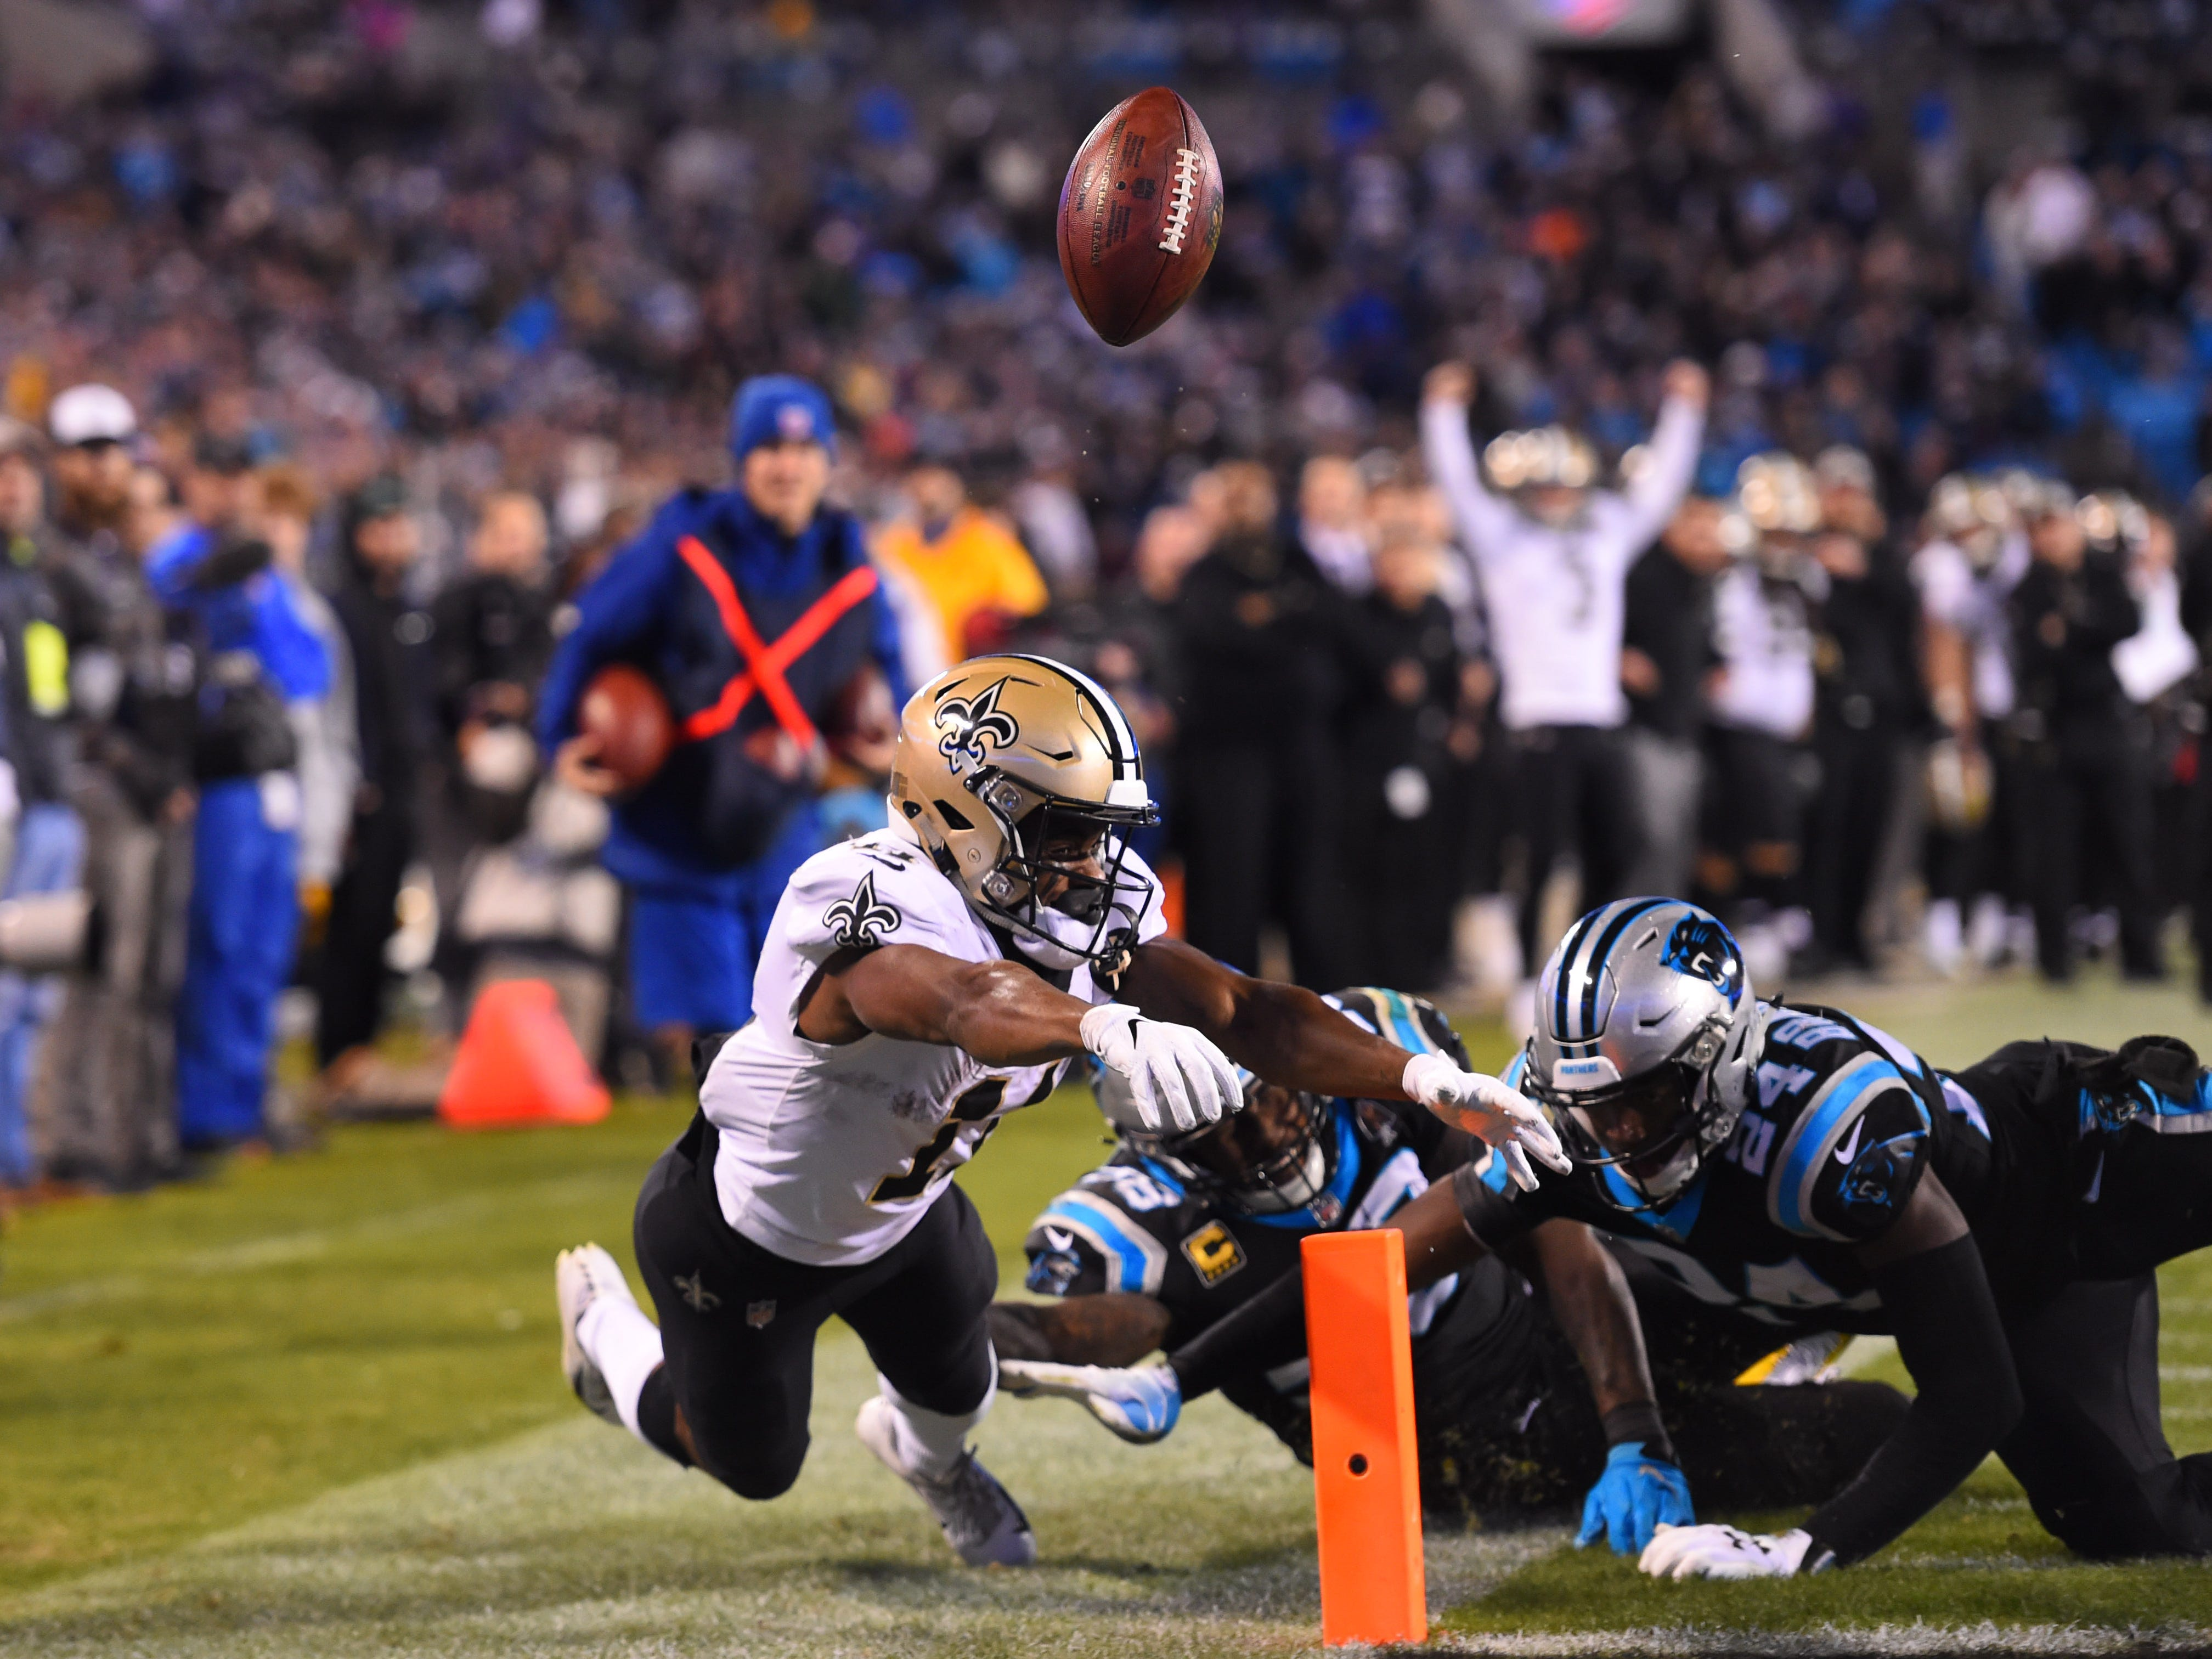 Carolina Panthers cornerback James Bradberry (24) forces a fumble by New Orleans Saints wide receiver Tommylee Lewis (11) at the goal line as outside linebacker Thomas Davis (58) helps defend in the fourth quarter at Bank of America Stadium. The fumble went out of the end zone turning the ball over to the Panthers.